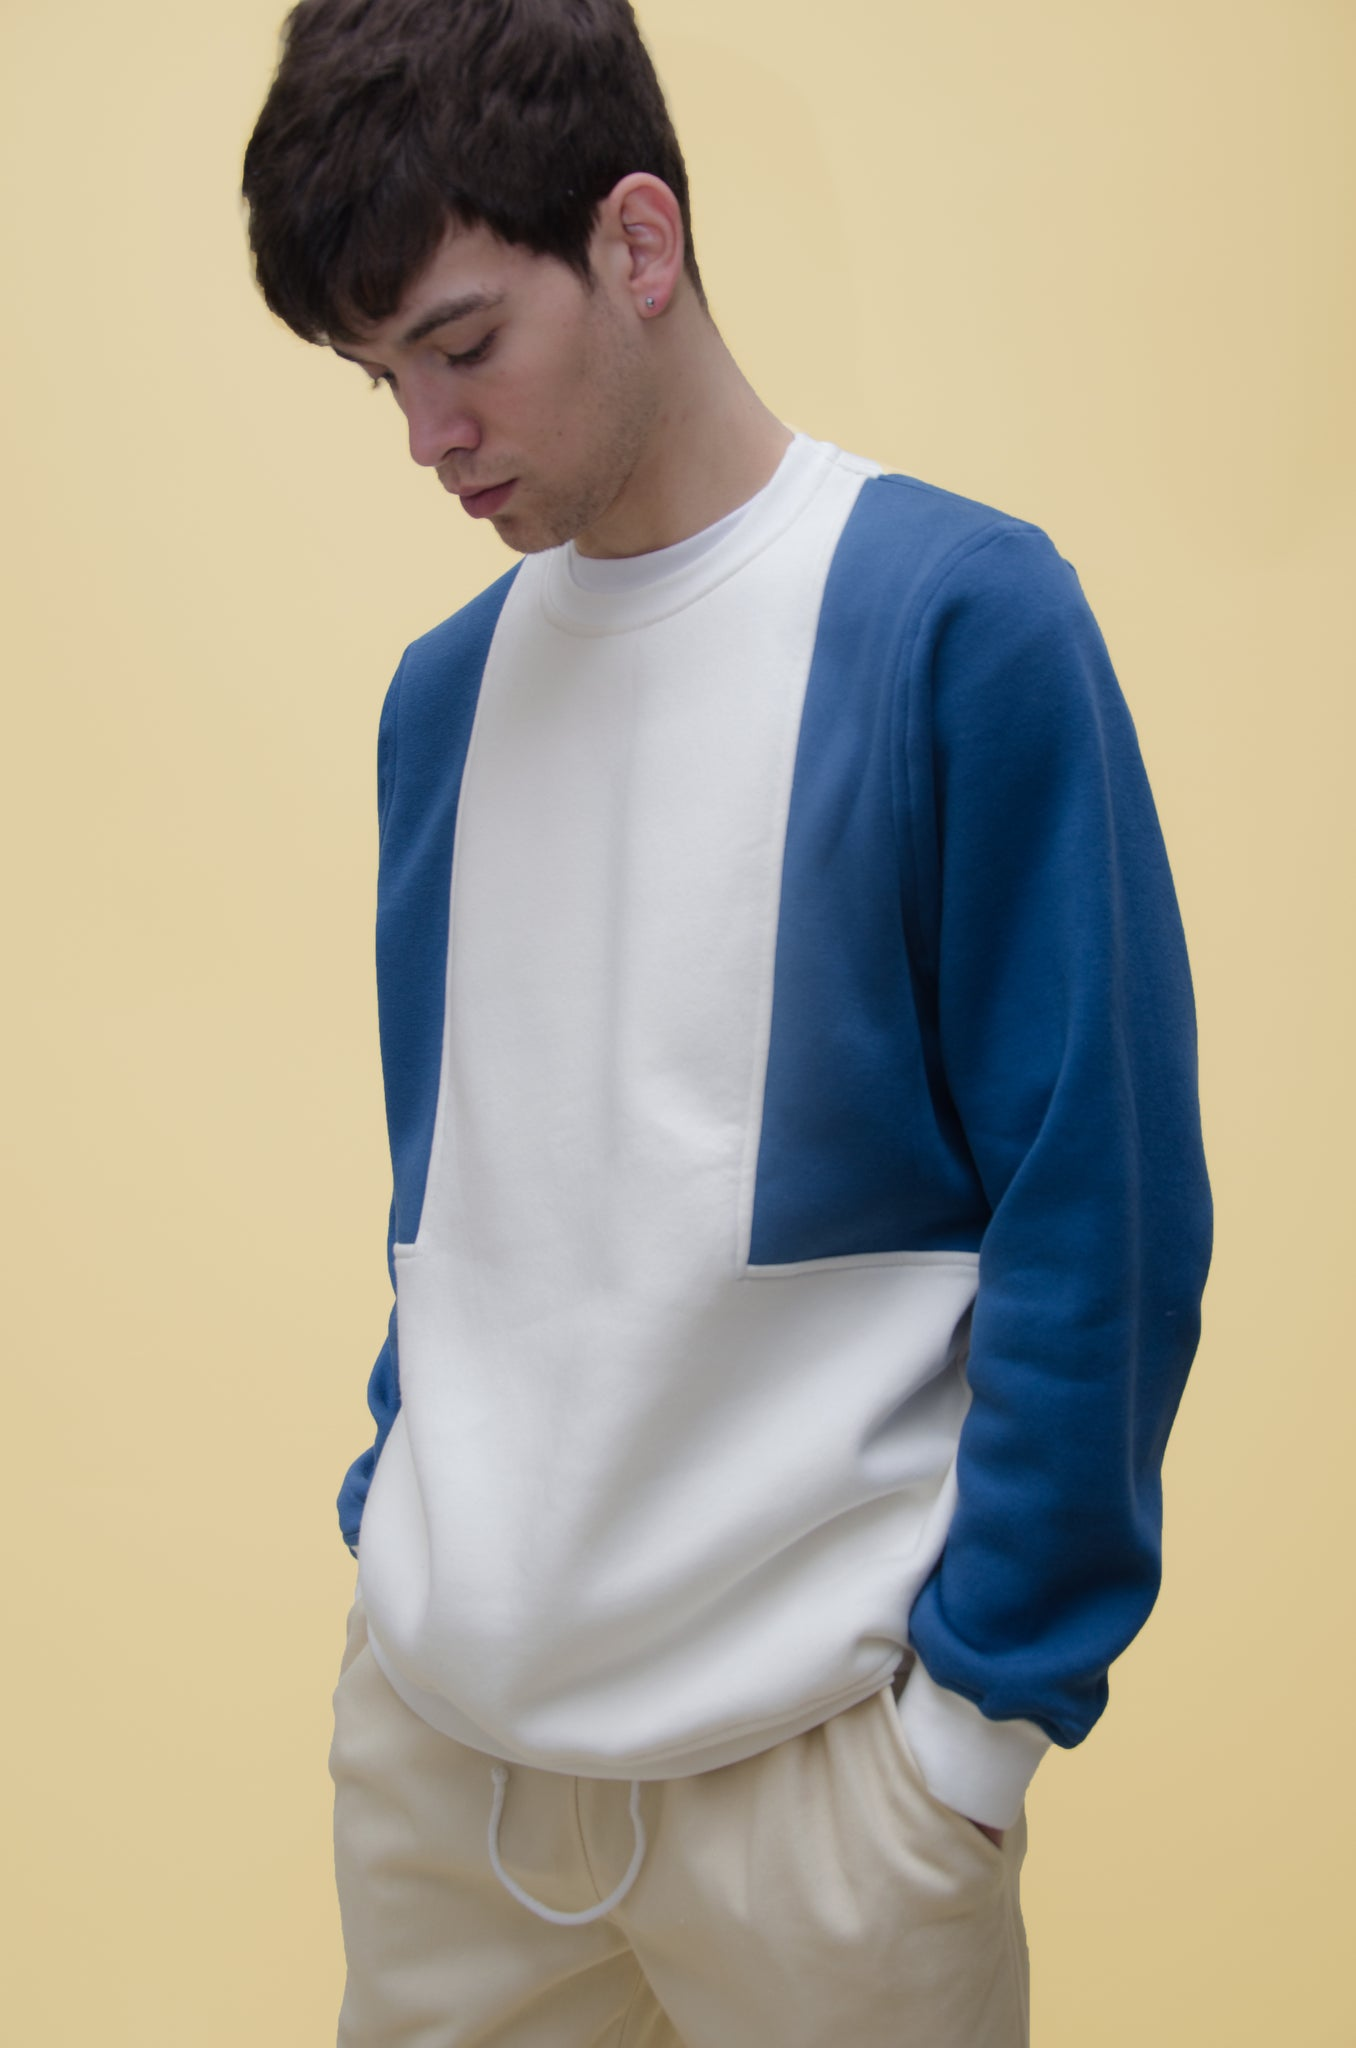 The North Hill Colorblock Crewneck is a made in France zipped sweatshirt